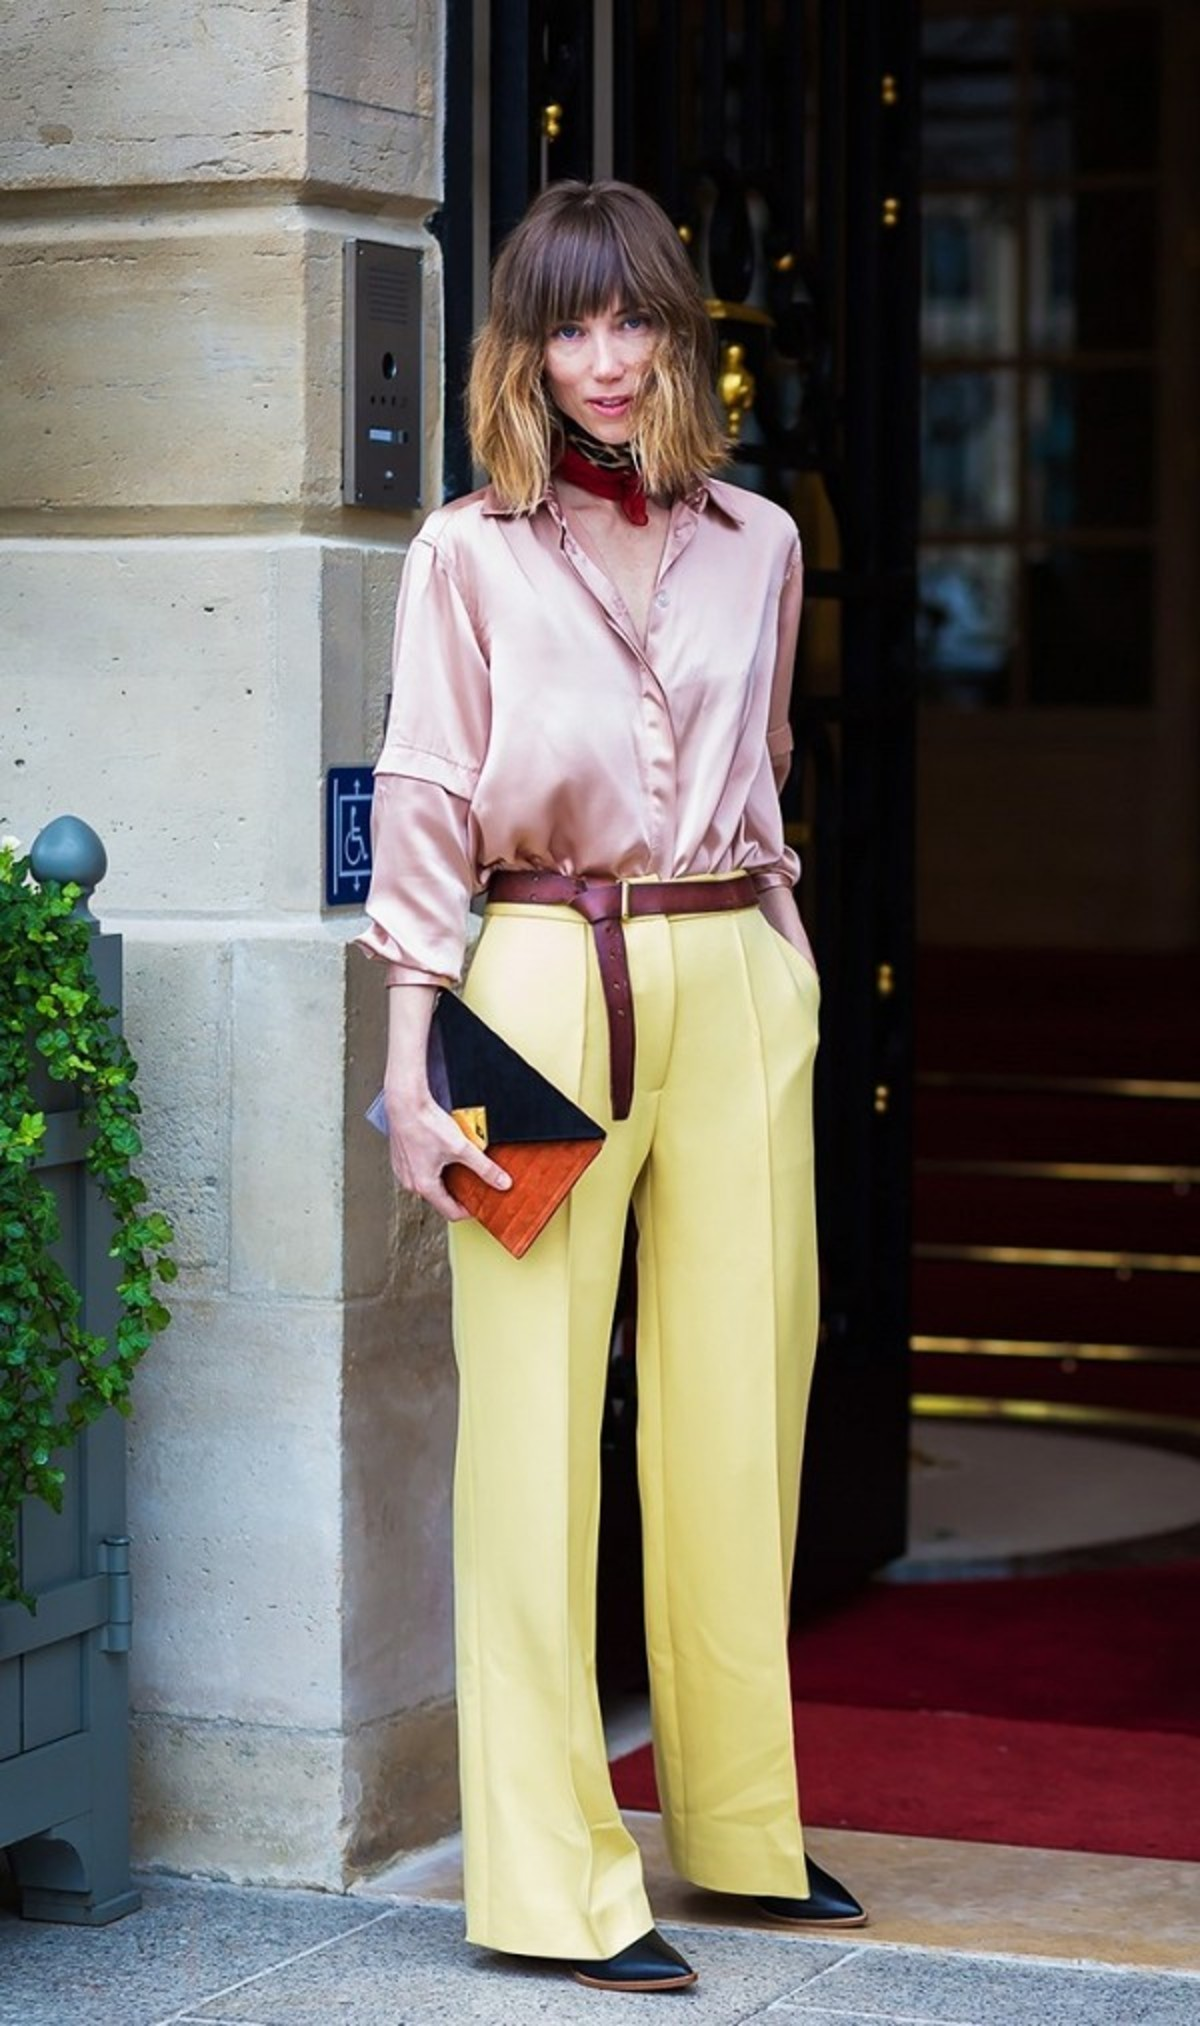 5-new-work-outfit-ideas-that-arent-boring-1934149.600x0c